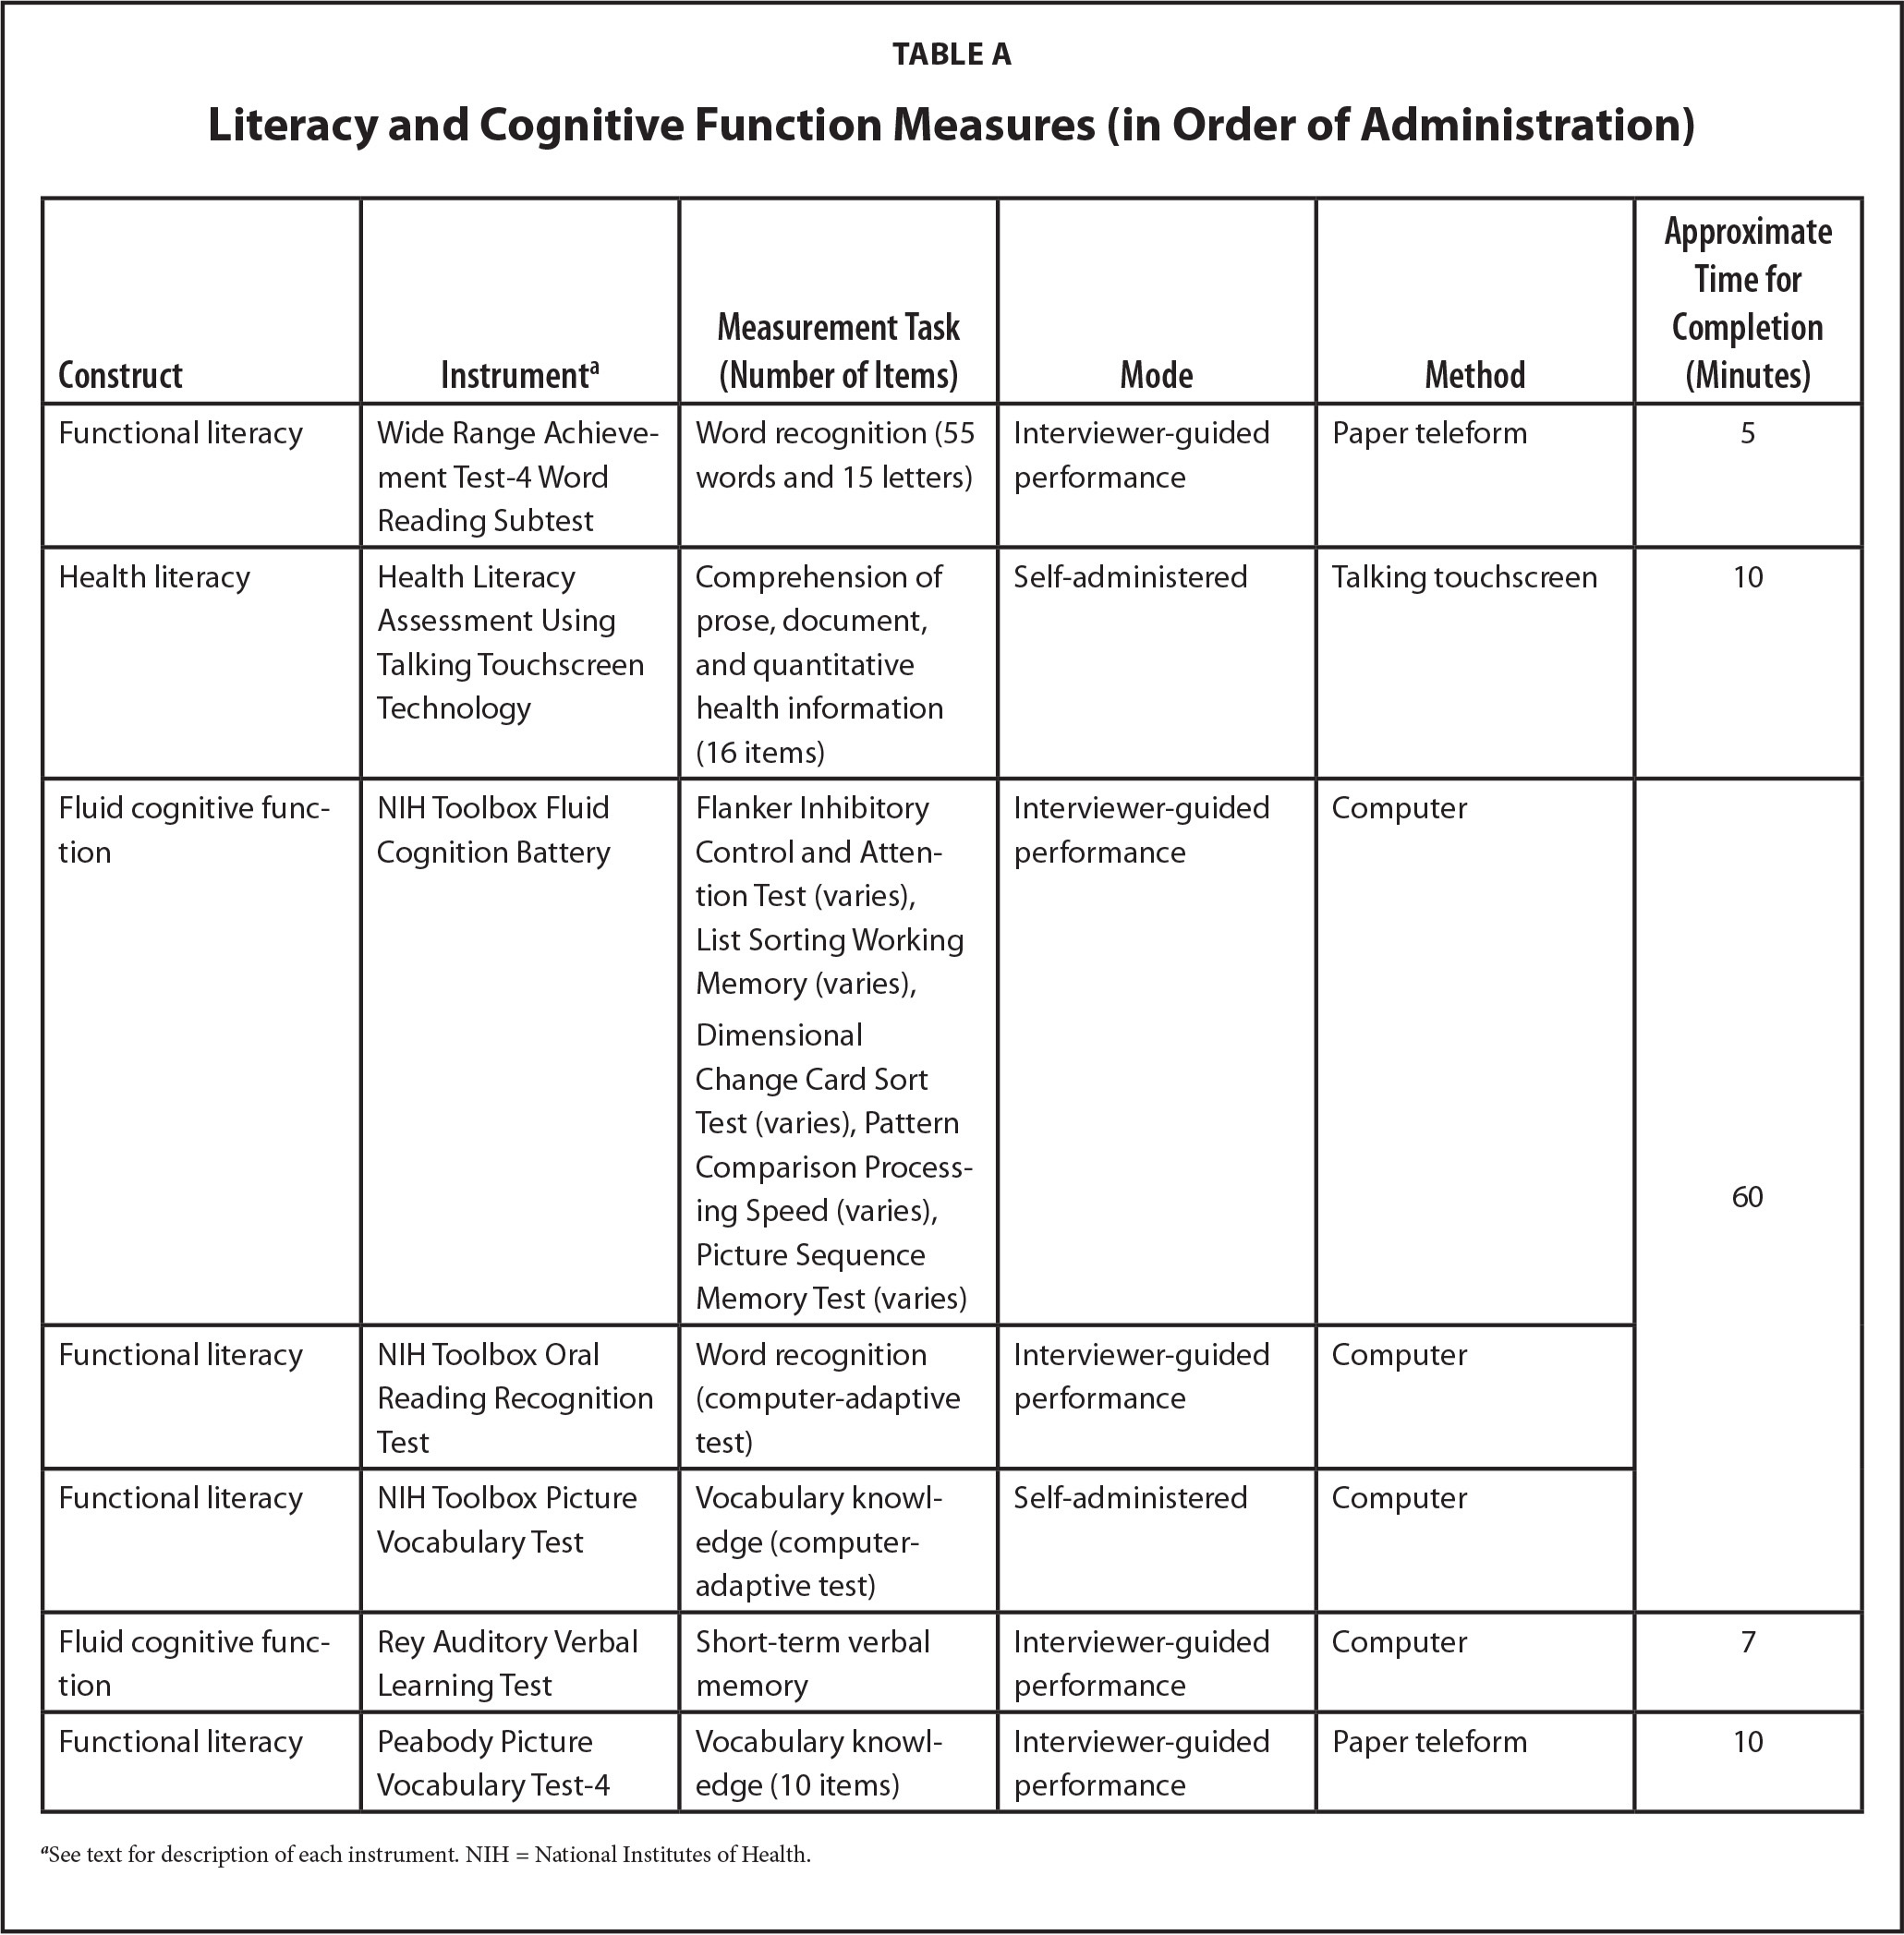 Literacy and Cognitive Function Measures (in Order of Administration)